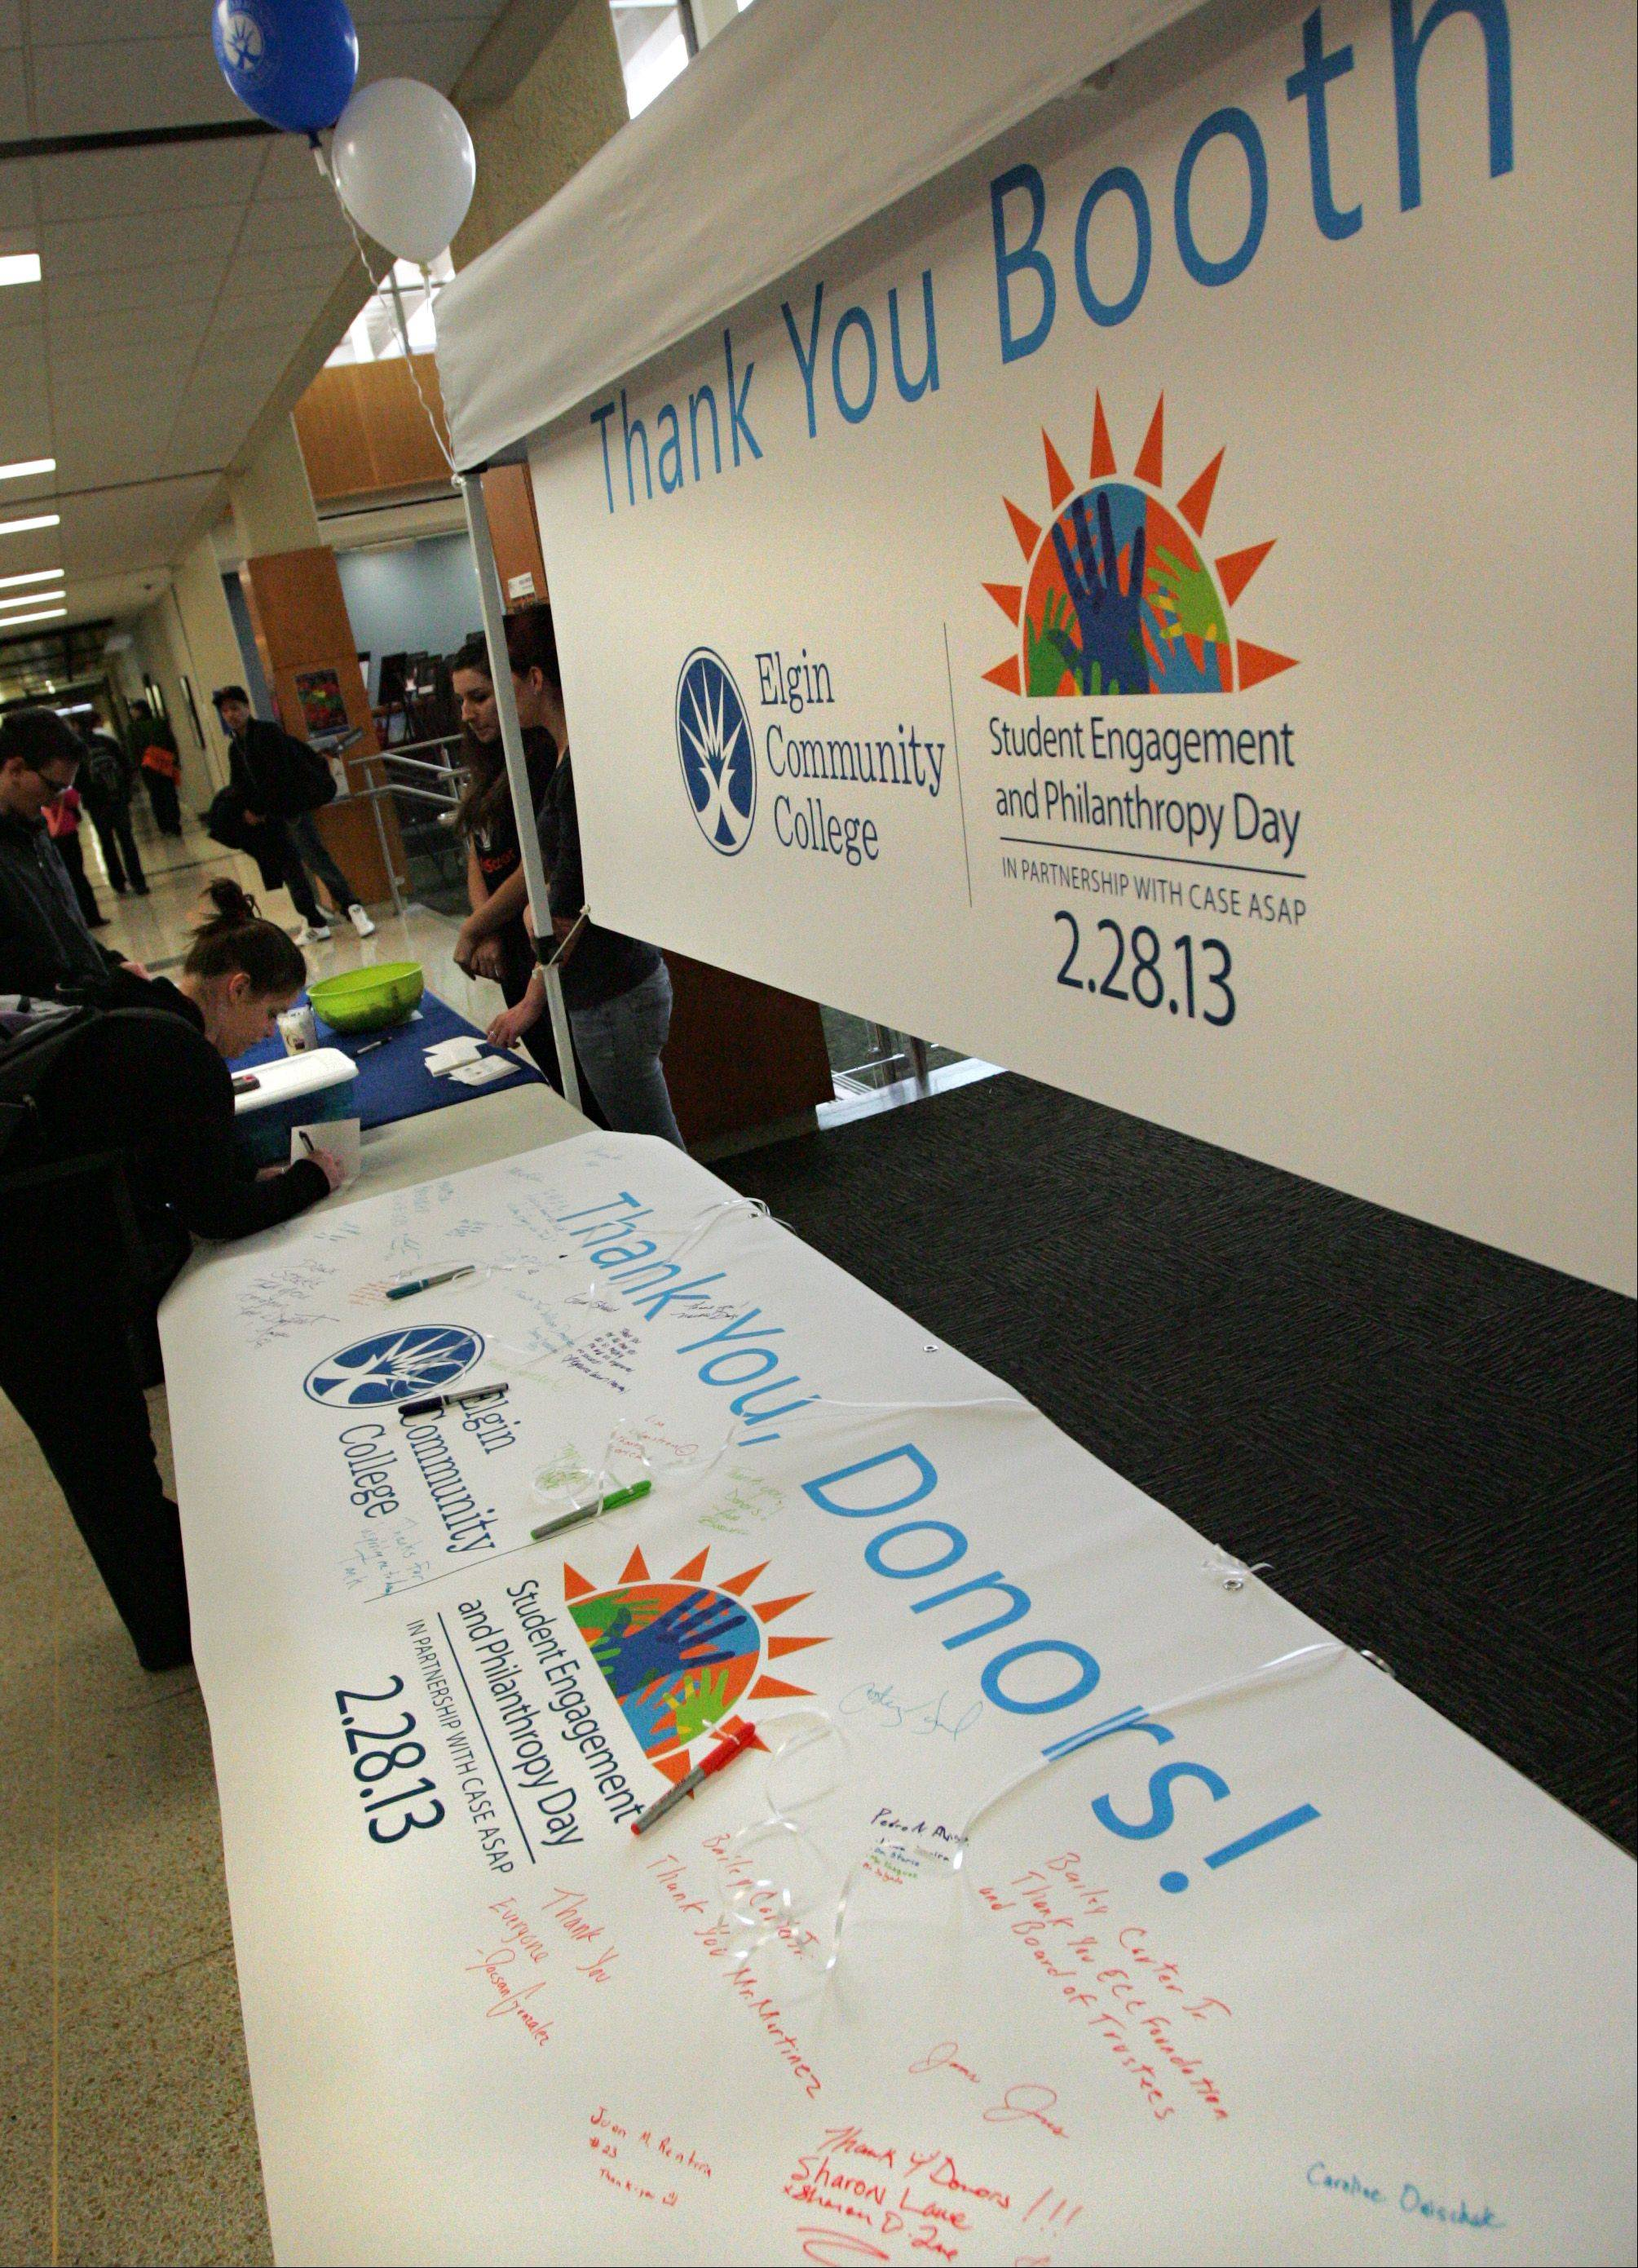 Elgin Community College students signed a large banner during the first Student Engagement and Philanthropy Day, thanking those who made their education possible. They day's events also included a session on philanthropic giving, which includes donating time and money.